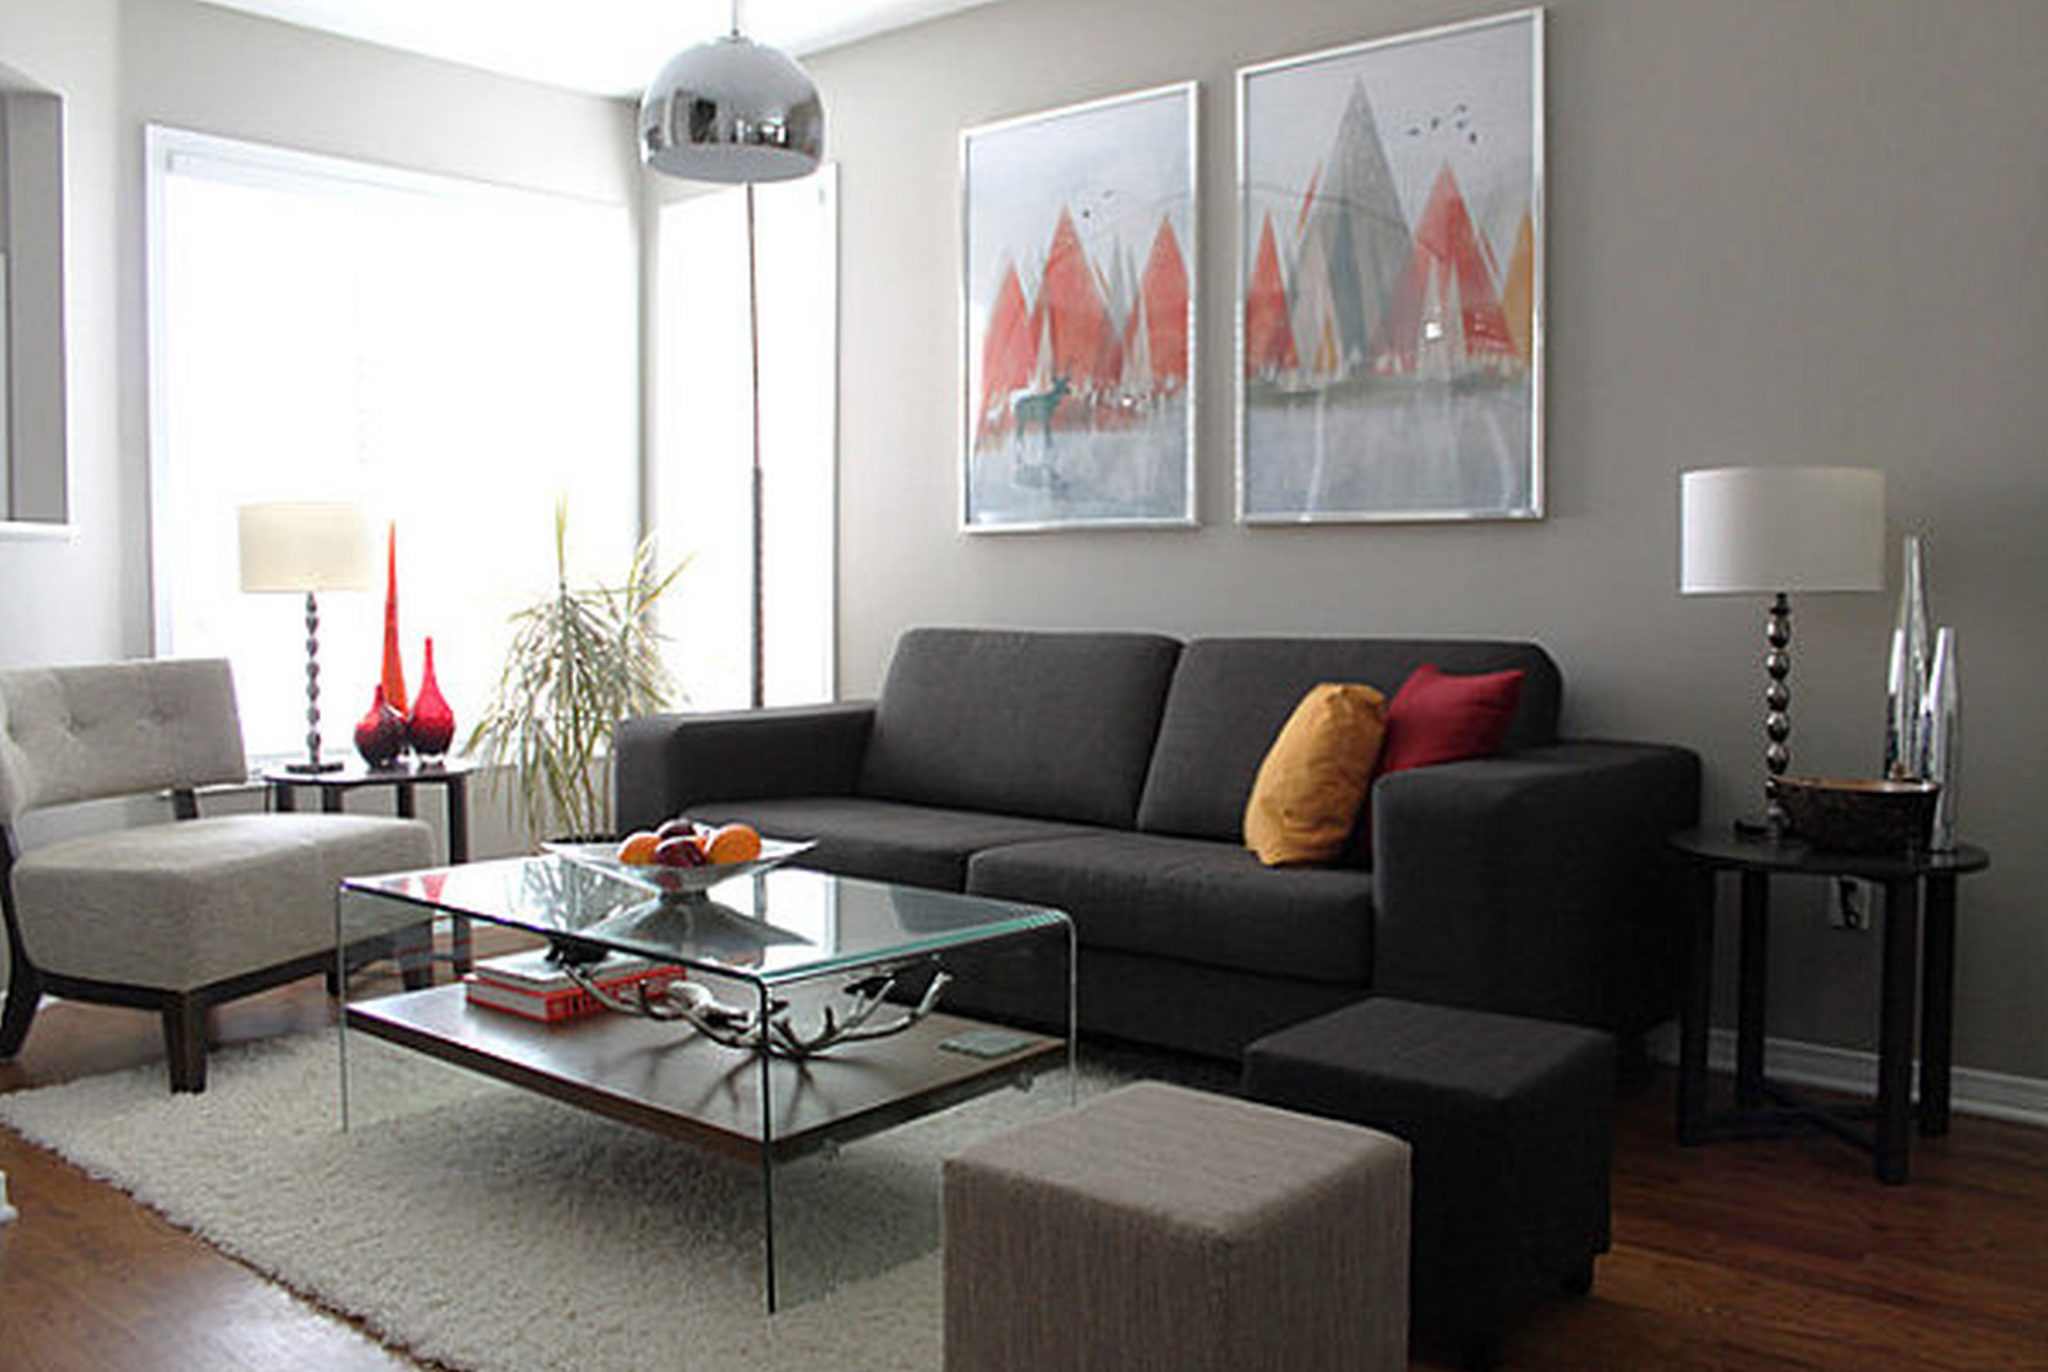 5 ideas para decorar salas de estar modernas hoy lowcost for Decoracion de sofas